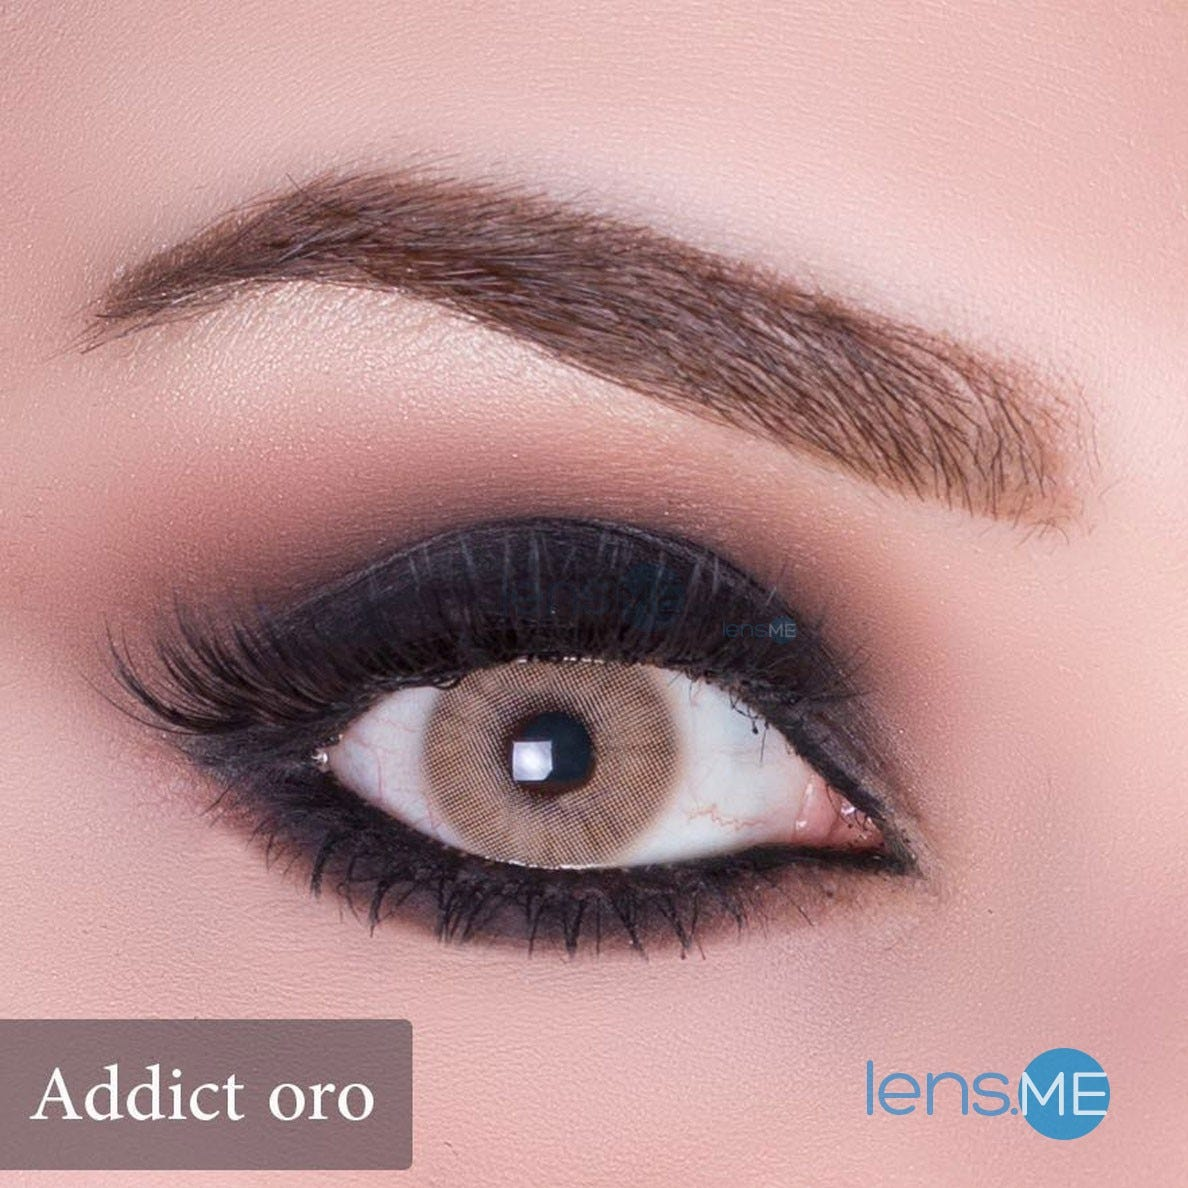 Anesthesia lenses dream anesthetic addict usa anesthesia addict oro 2 lenses nvjuhfo Choice Image